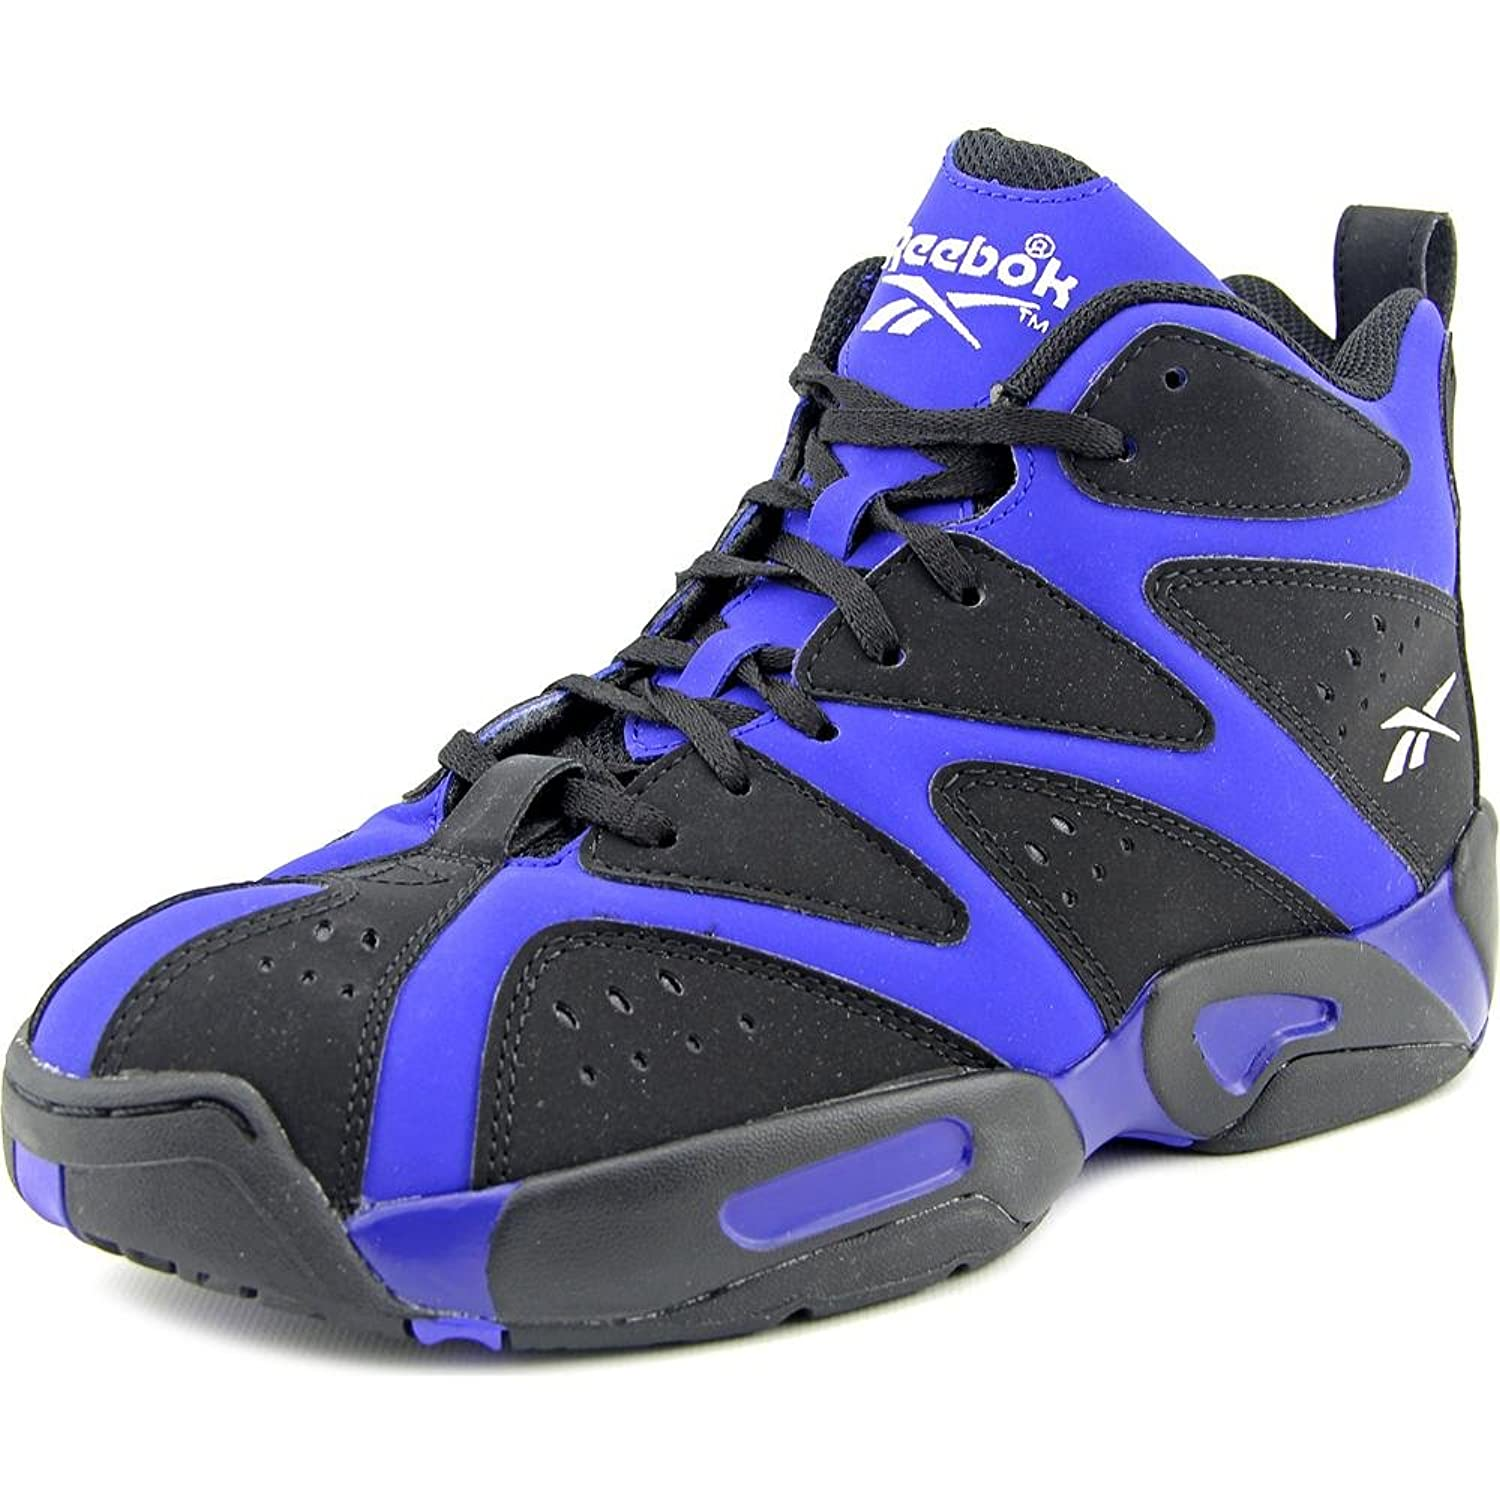 Amazoncom  Reebok Kamikaze I Mid Basketball Sneaker Little Kid  Basketball